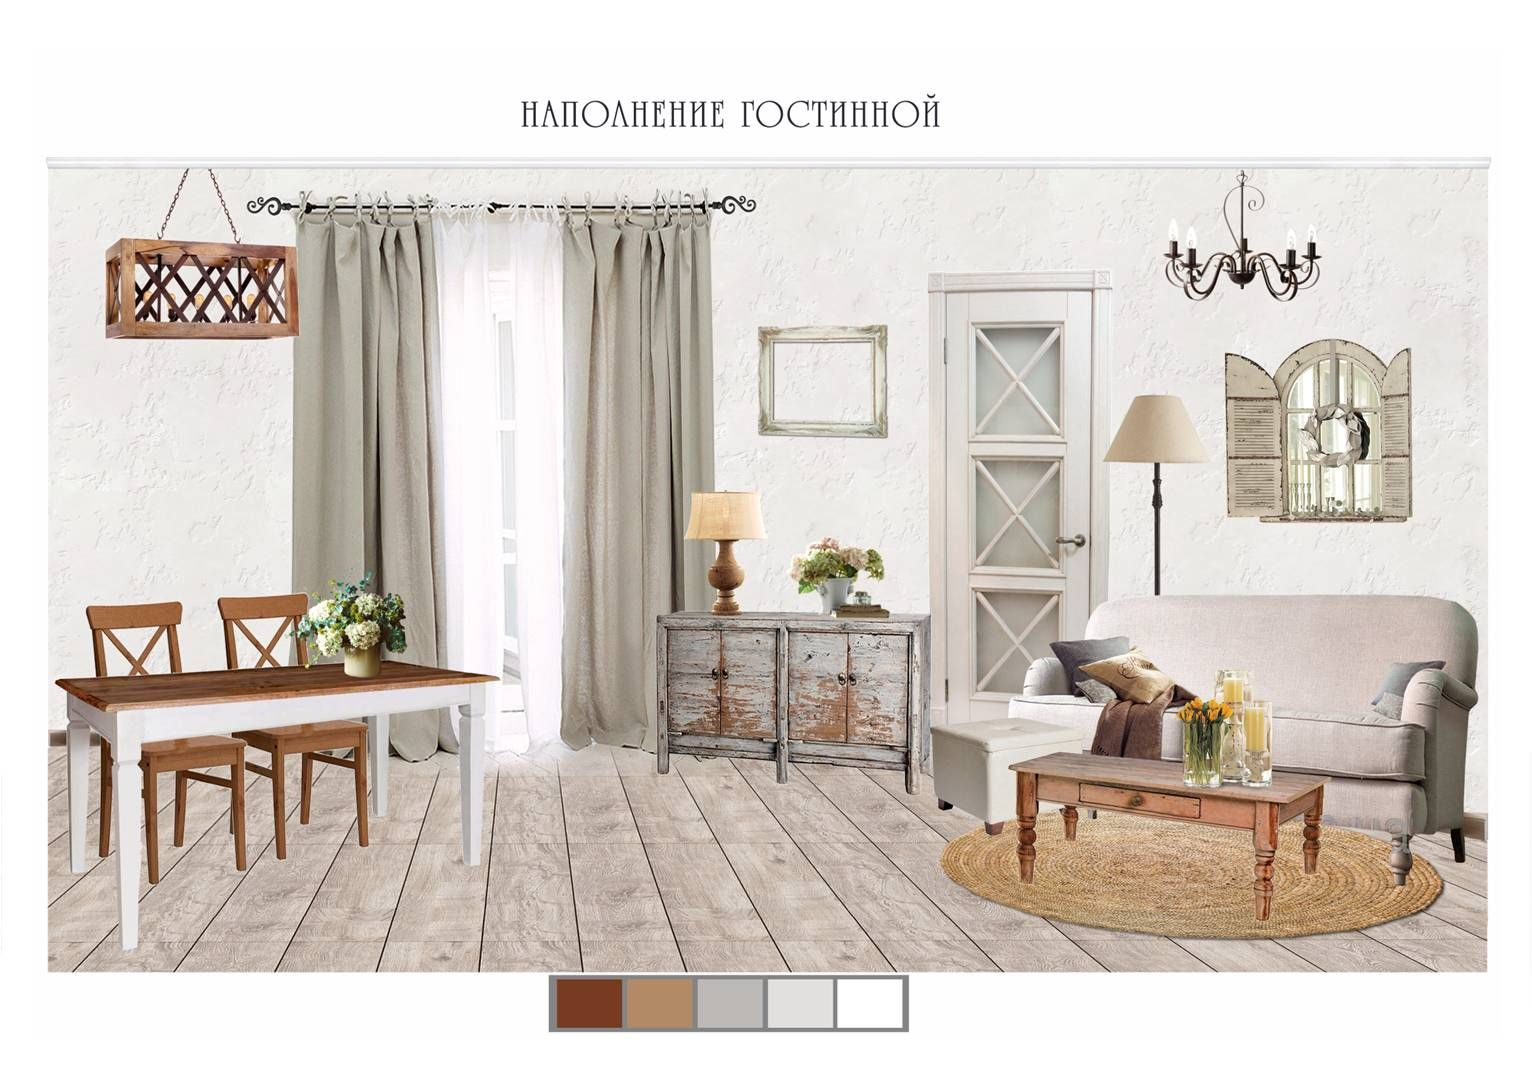 Provence Style Living Room Collage By Irina Grigor Interior Design Course Student In European School Kiev Ukraine